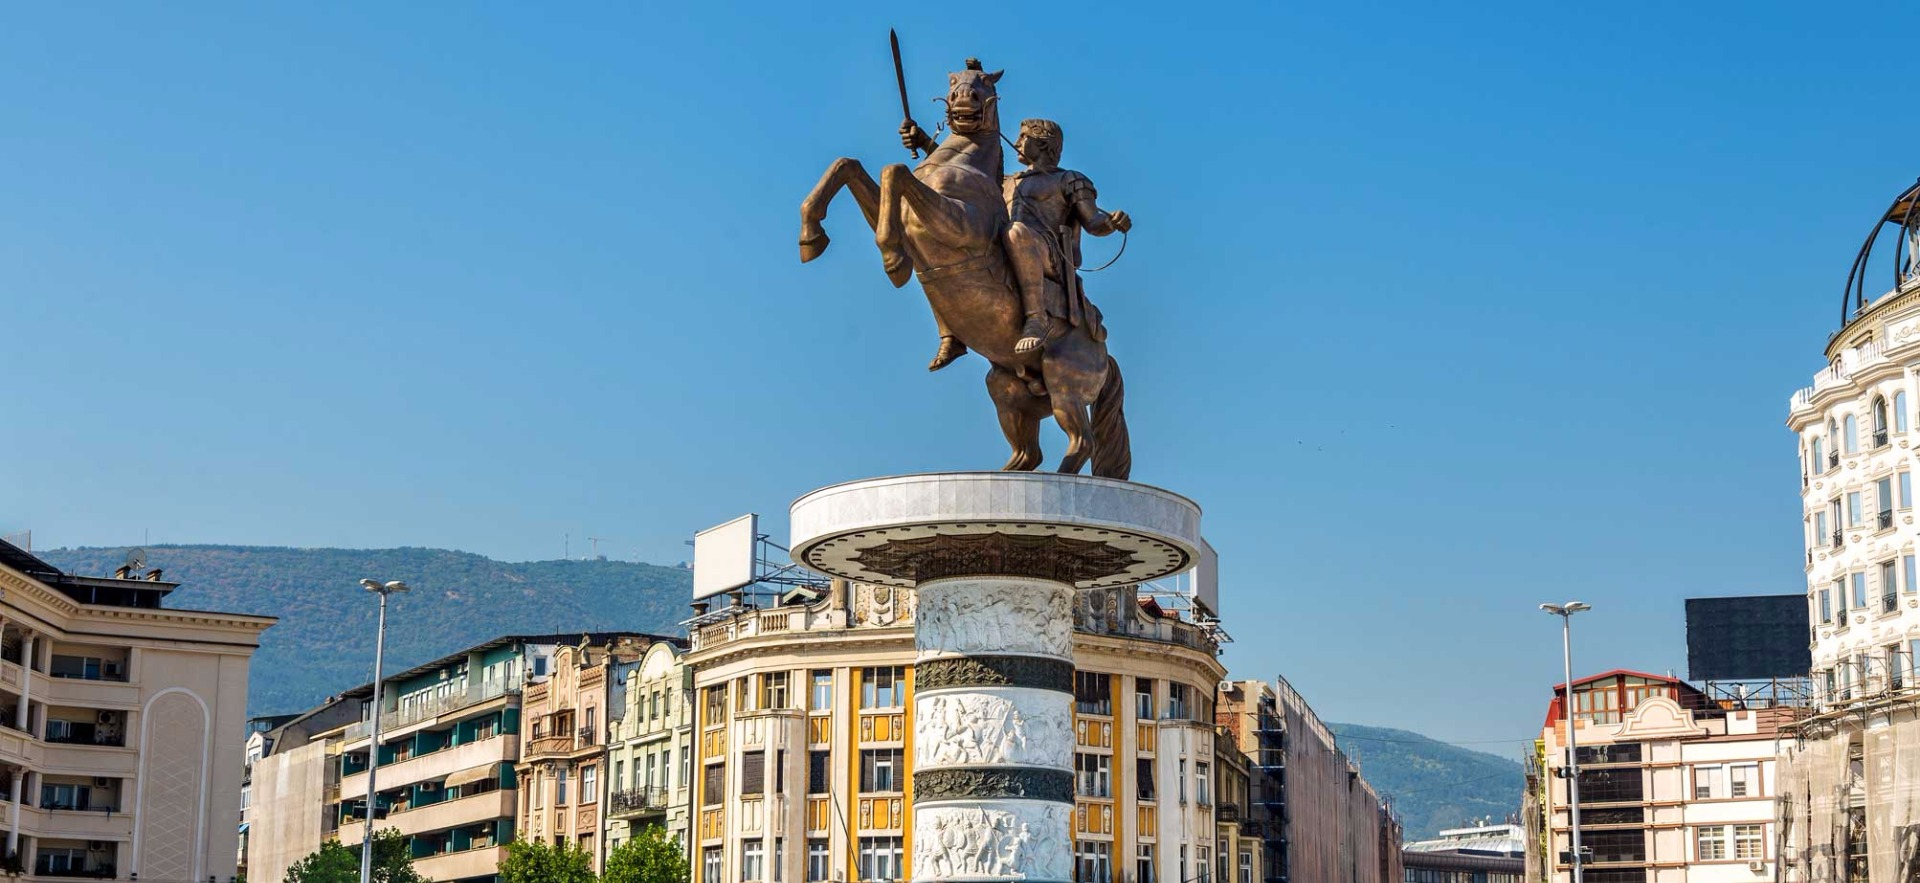 Alexander the Great loved his horse Bucephalus so much and he contributed him a state funeral when he died and named a city after him.